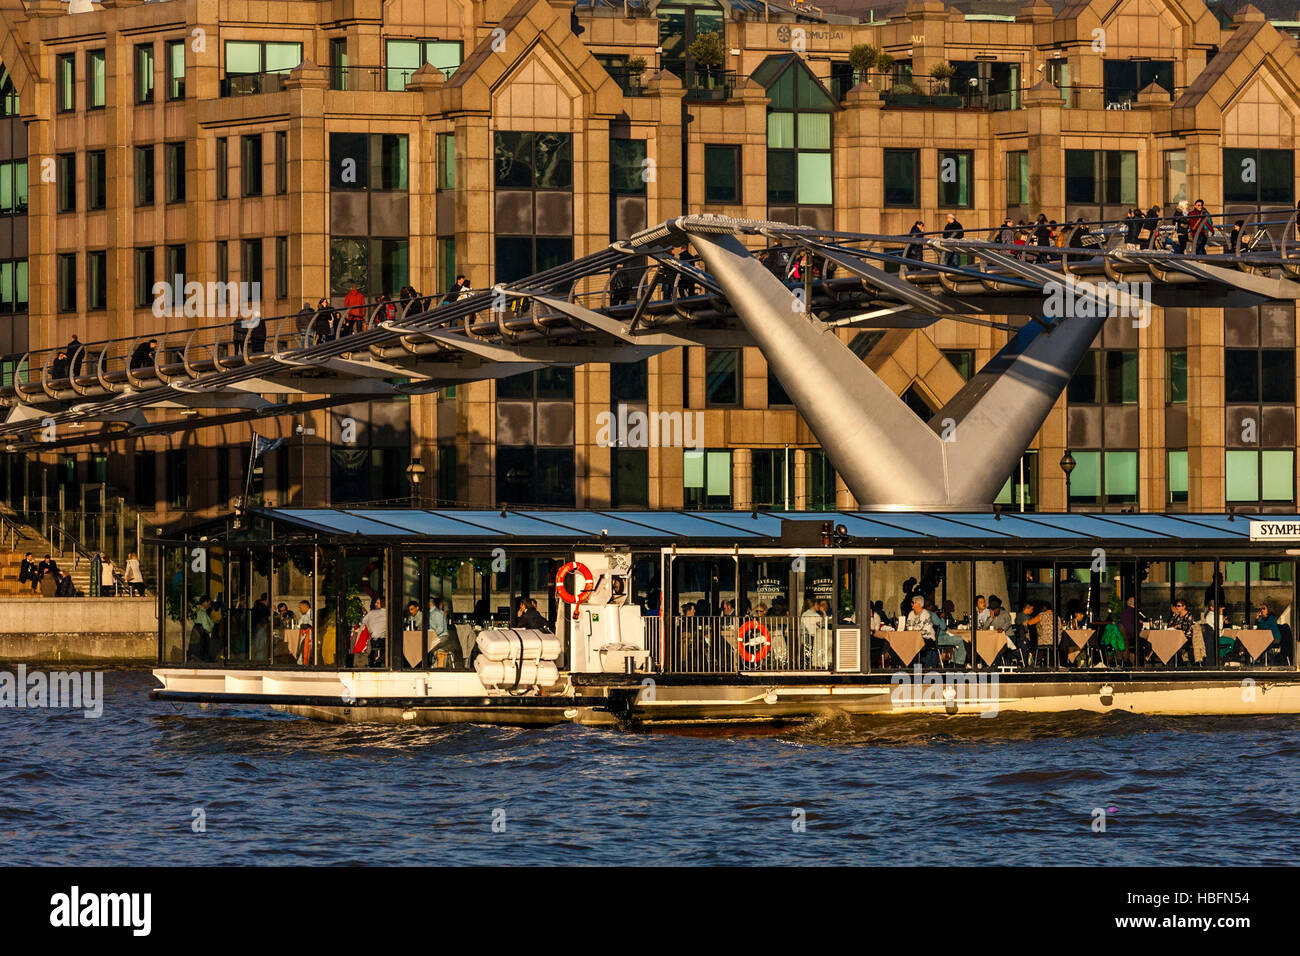 A Symphony River Cruise Boat Passes Underneath The Millennium Bridge On The River Thames, London, England - Stock Image